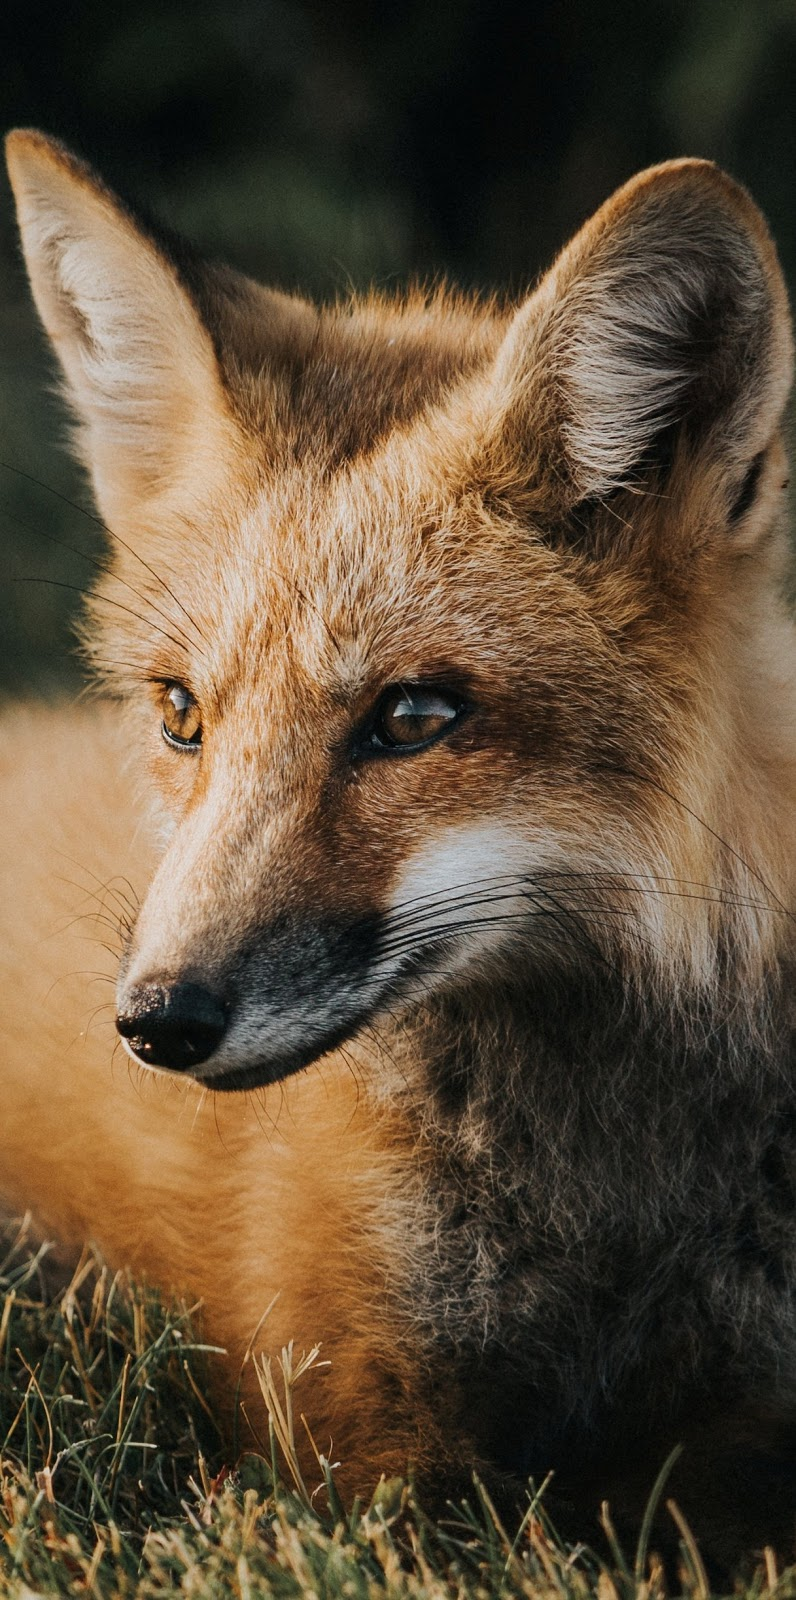 Red fox face photo.